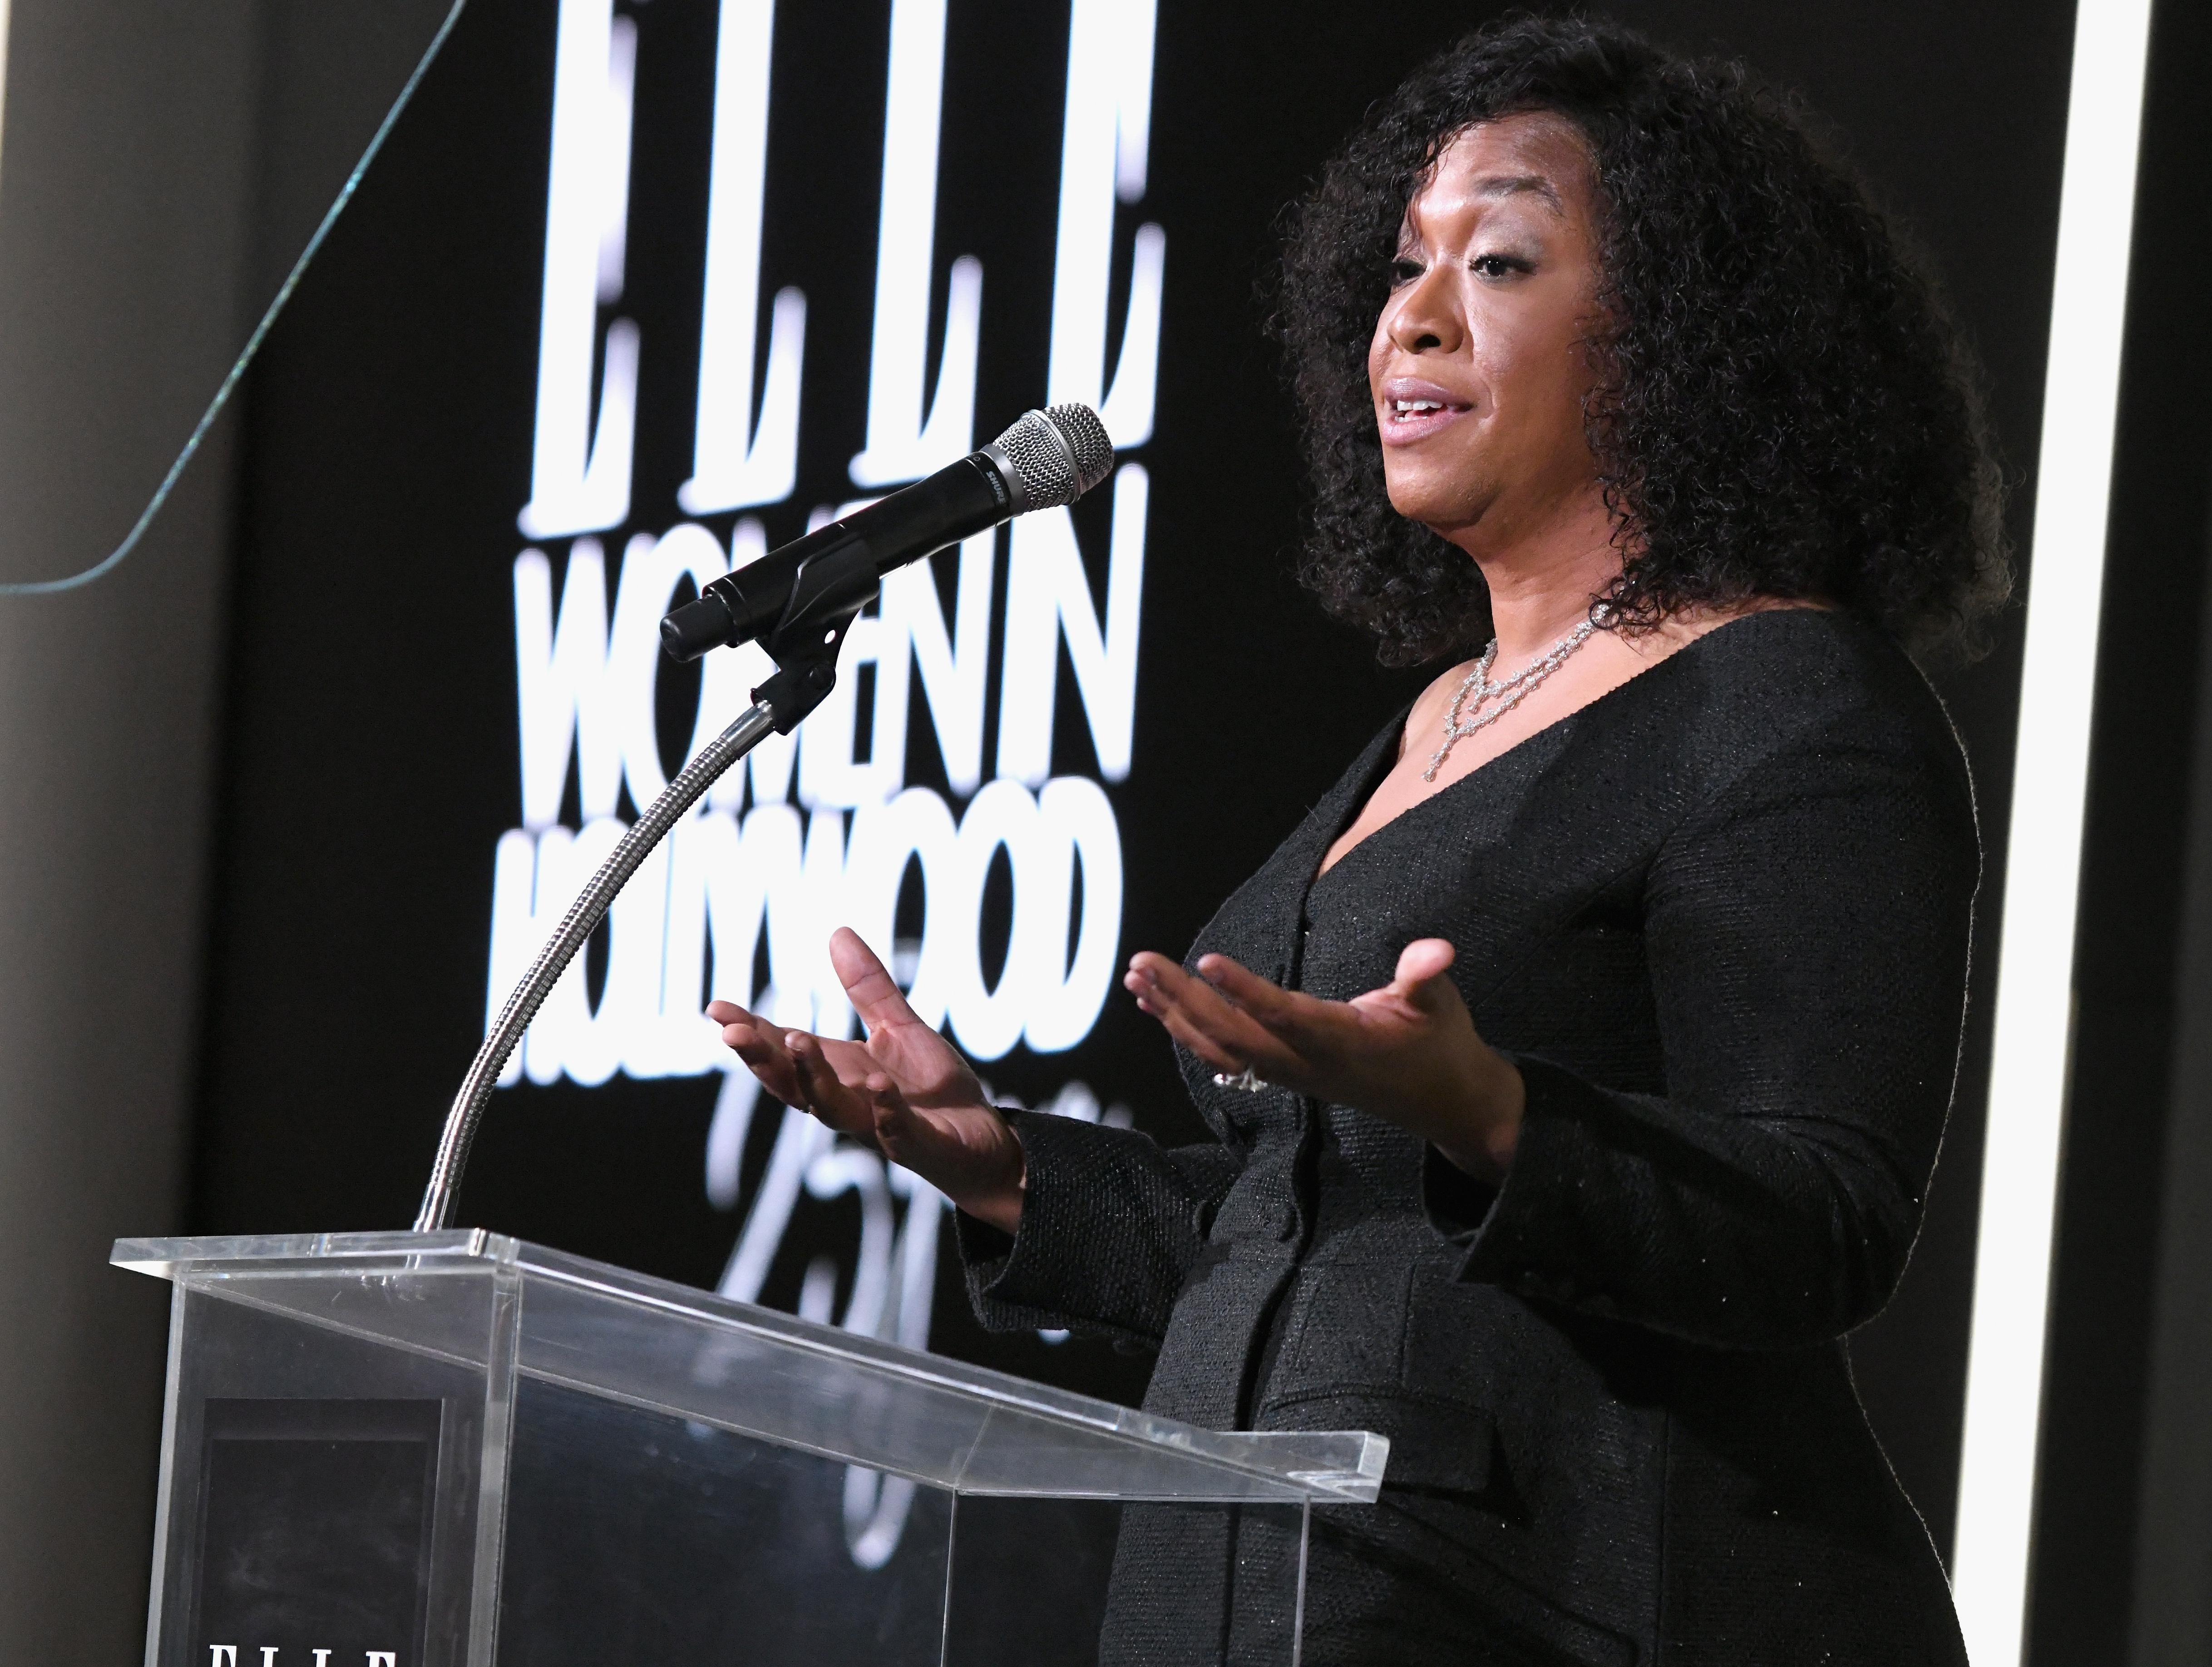 Shonda Rhimes stands at a glass podium, arms outstretched.